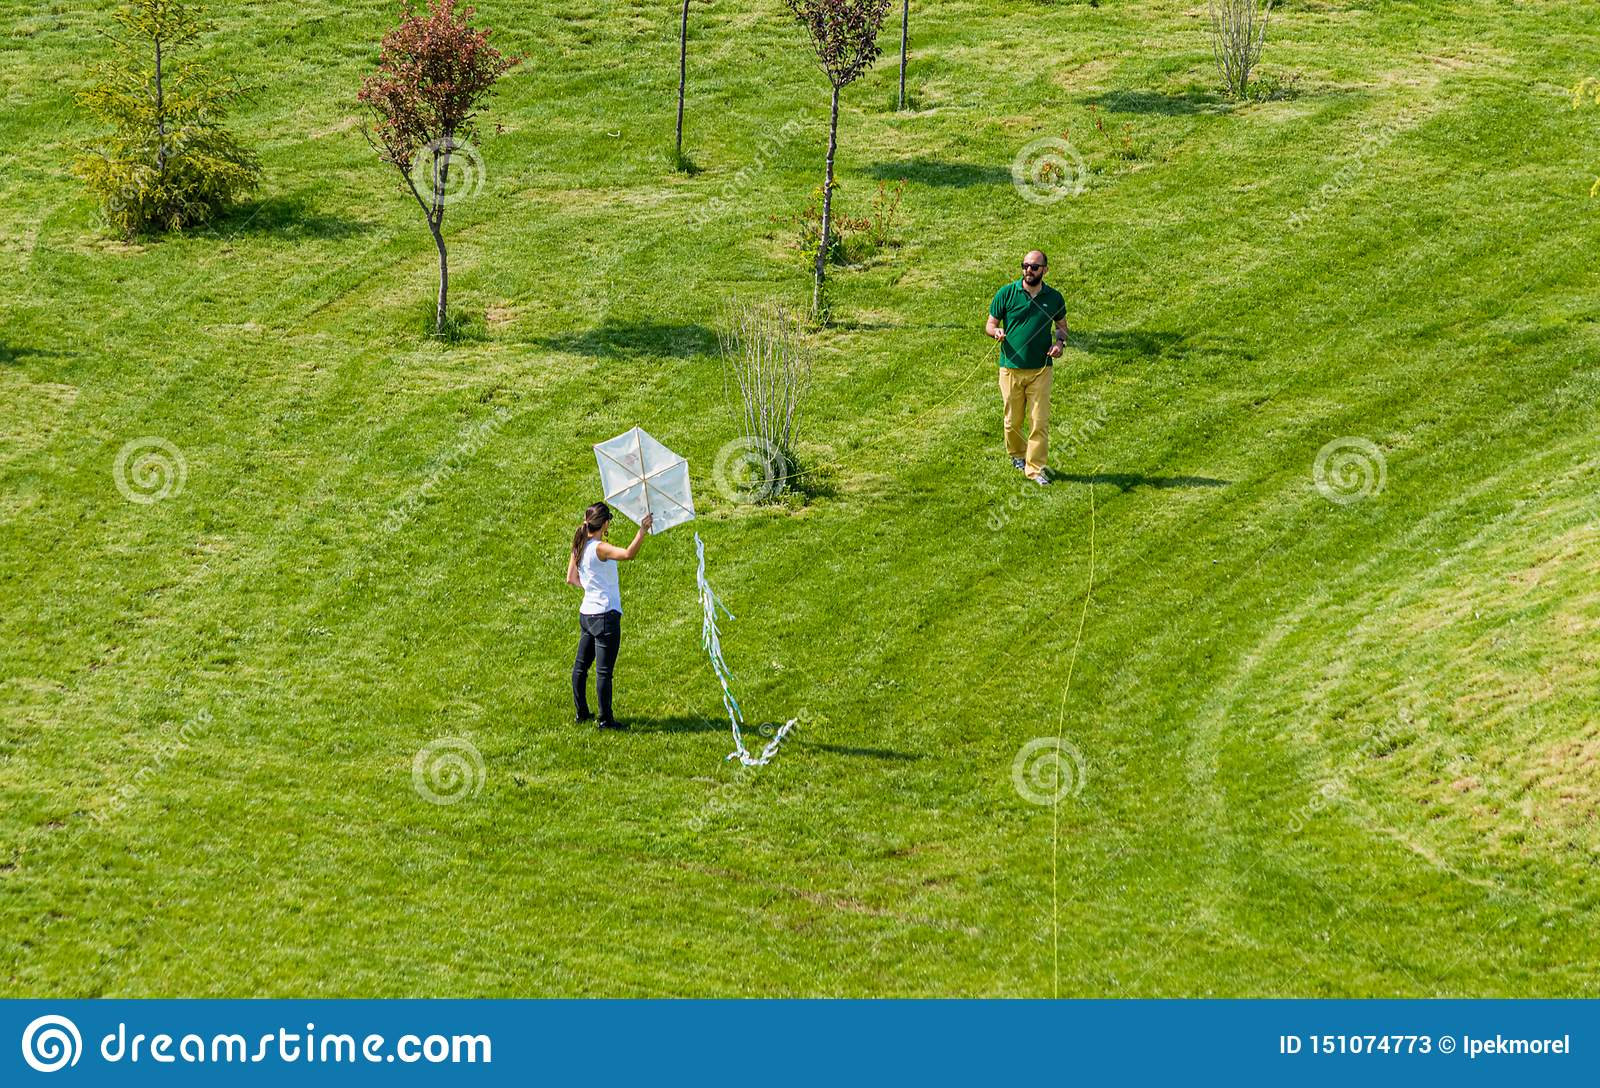 Man and woman flying a white kite in a park